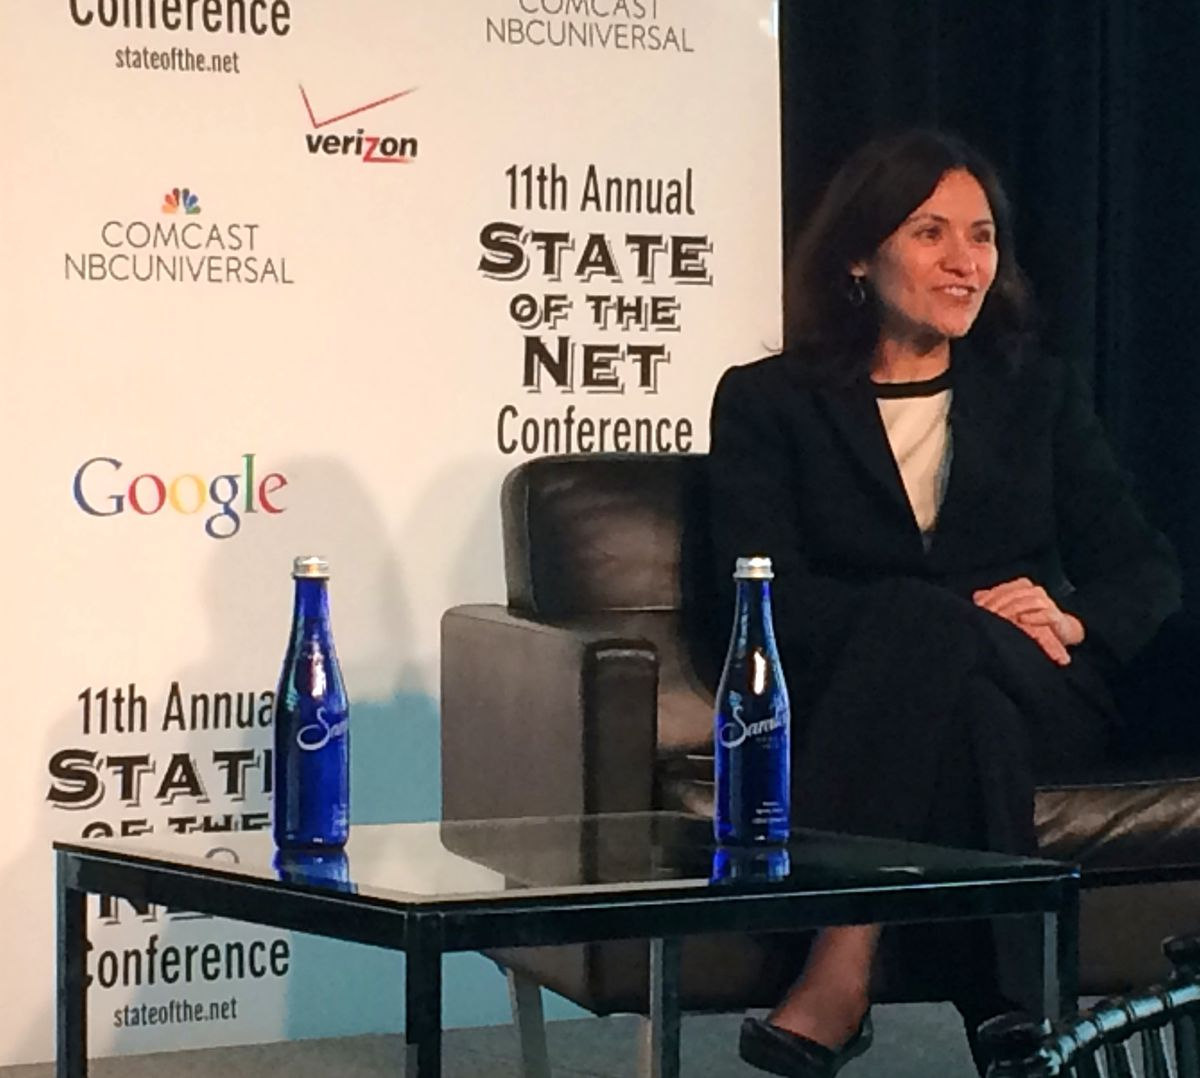 FTC Chairwoman Edith Ramirez at the State of the Net Conference